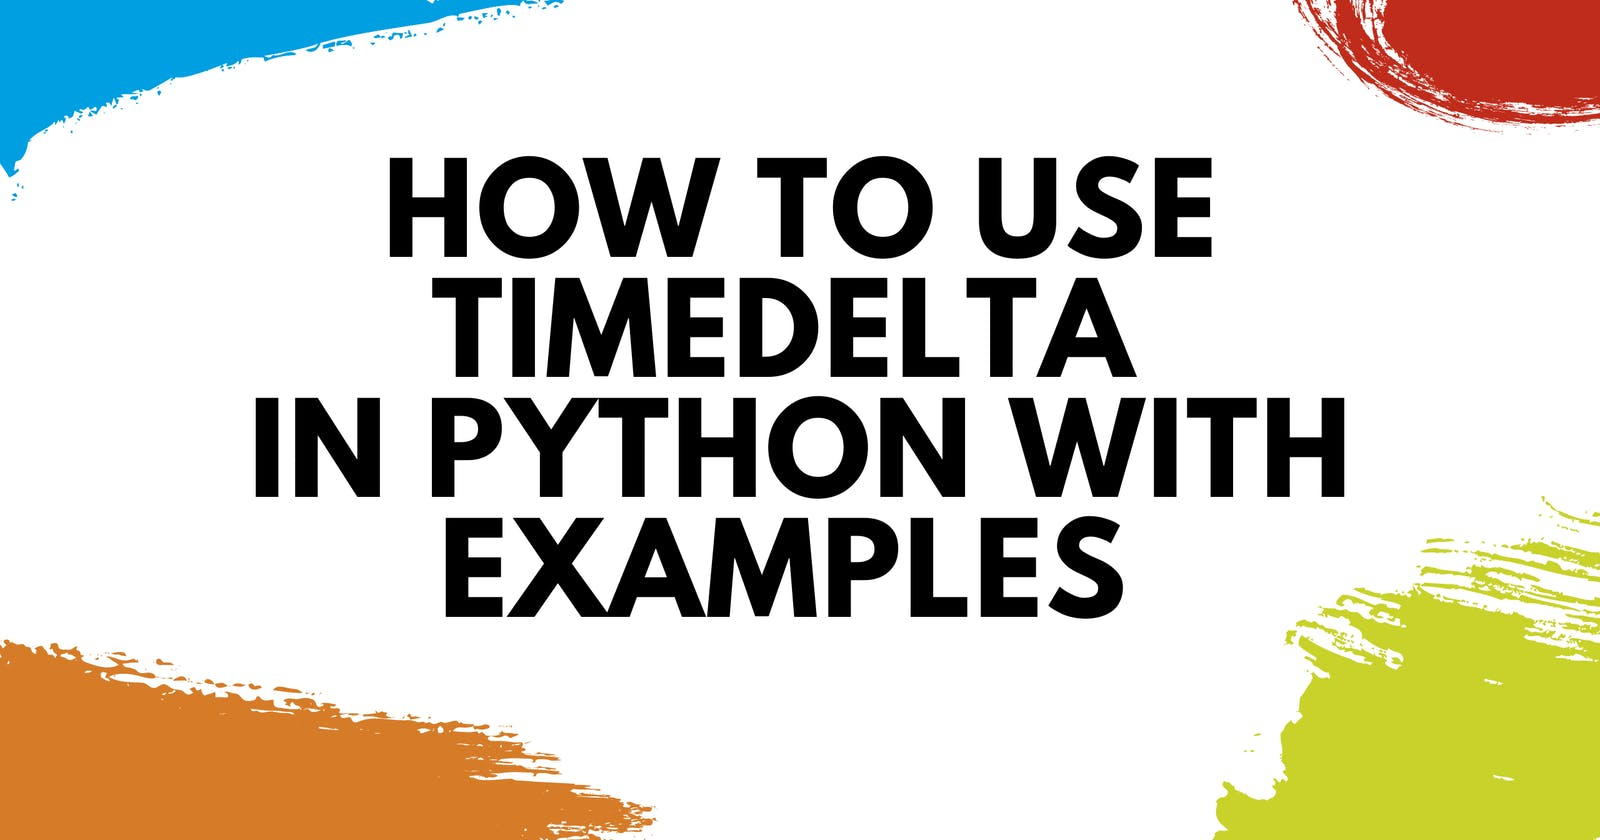 How to Use datetime.timedelta in Python With Examples